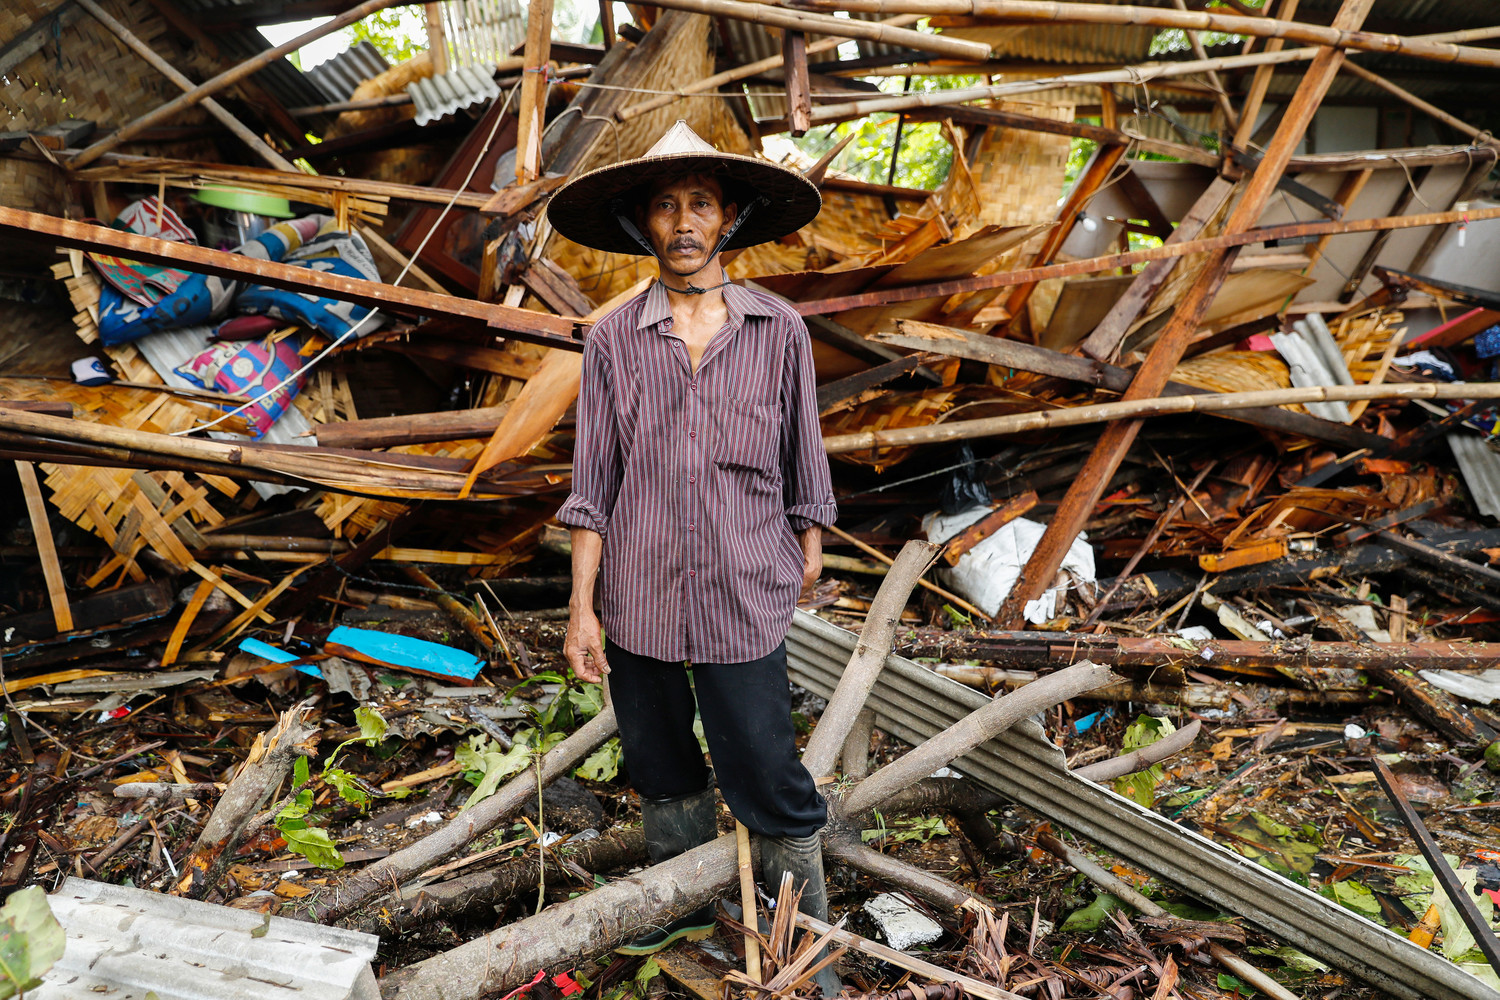 An Indonesian man stands in front of his destroyed house Dec. 24 after a tsunami hit two islands. Indonesian authorities asked people to avoid the coast in areas where the tsunami killed more than 400 people.